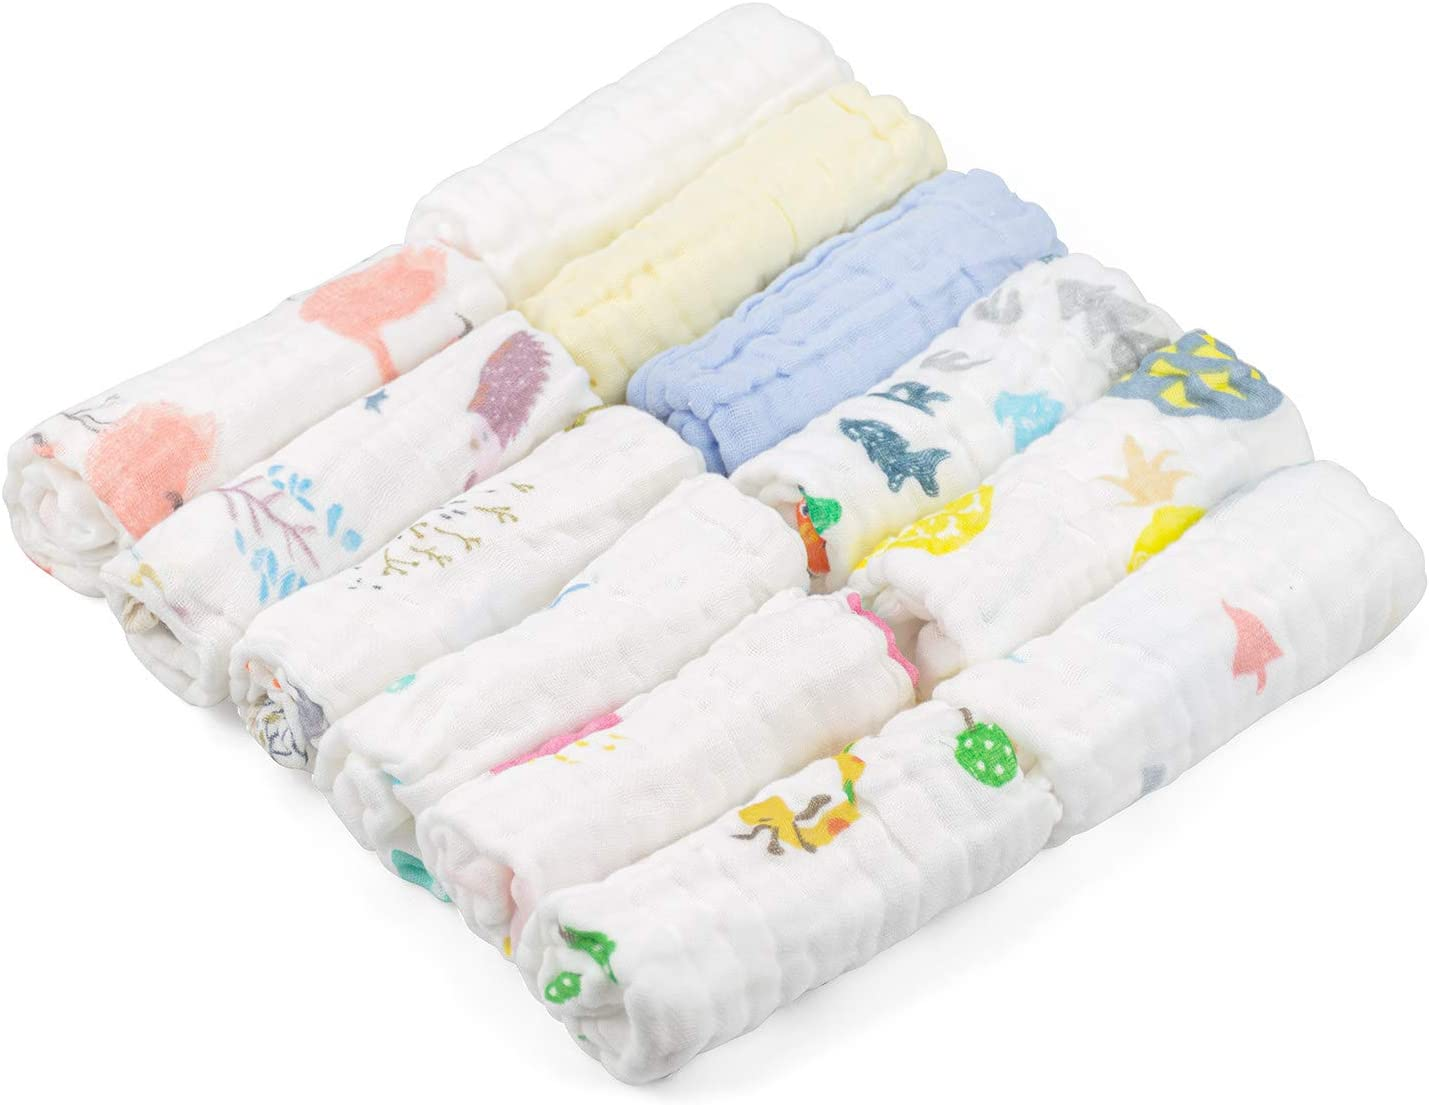 Soft and Absorbent for Infant Newborn Baby Boy Girl Kingrol 12 Pack Colorful Baby Muslin Washcloths 10 x 10 Inch 6-Layers Natural Cotton Newborn Face Towels Baby Wipes